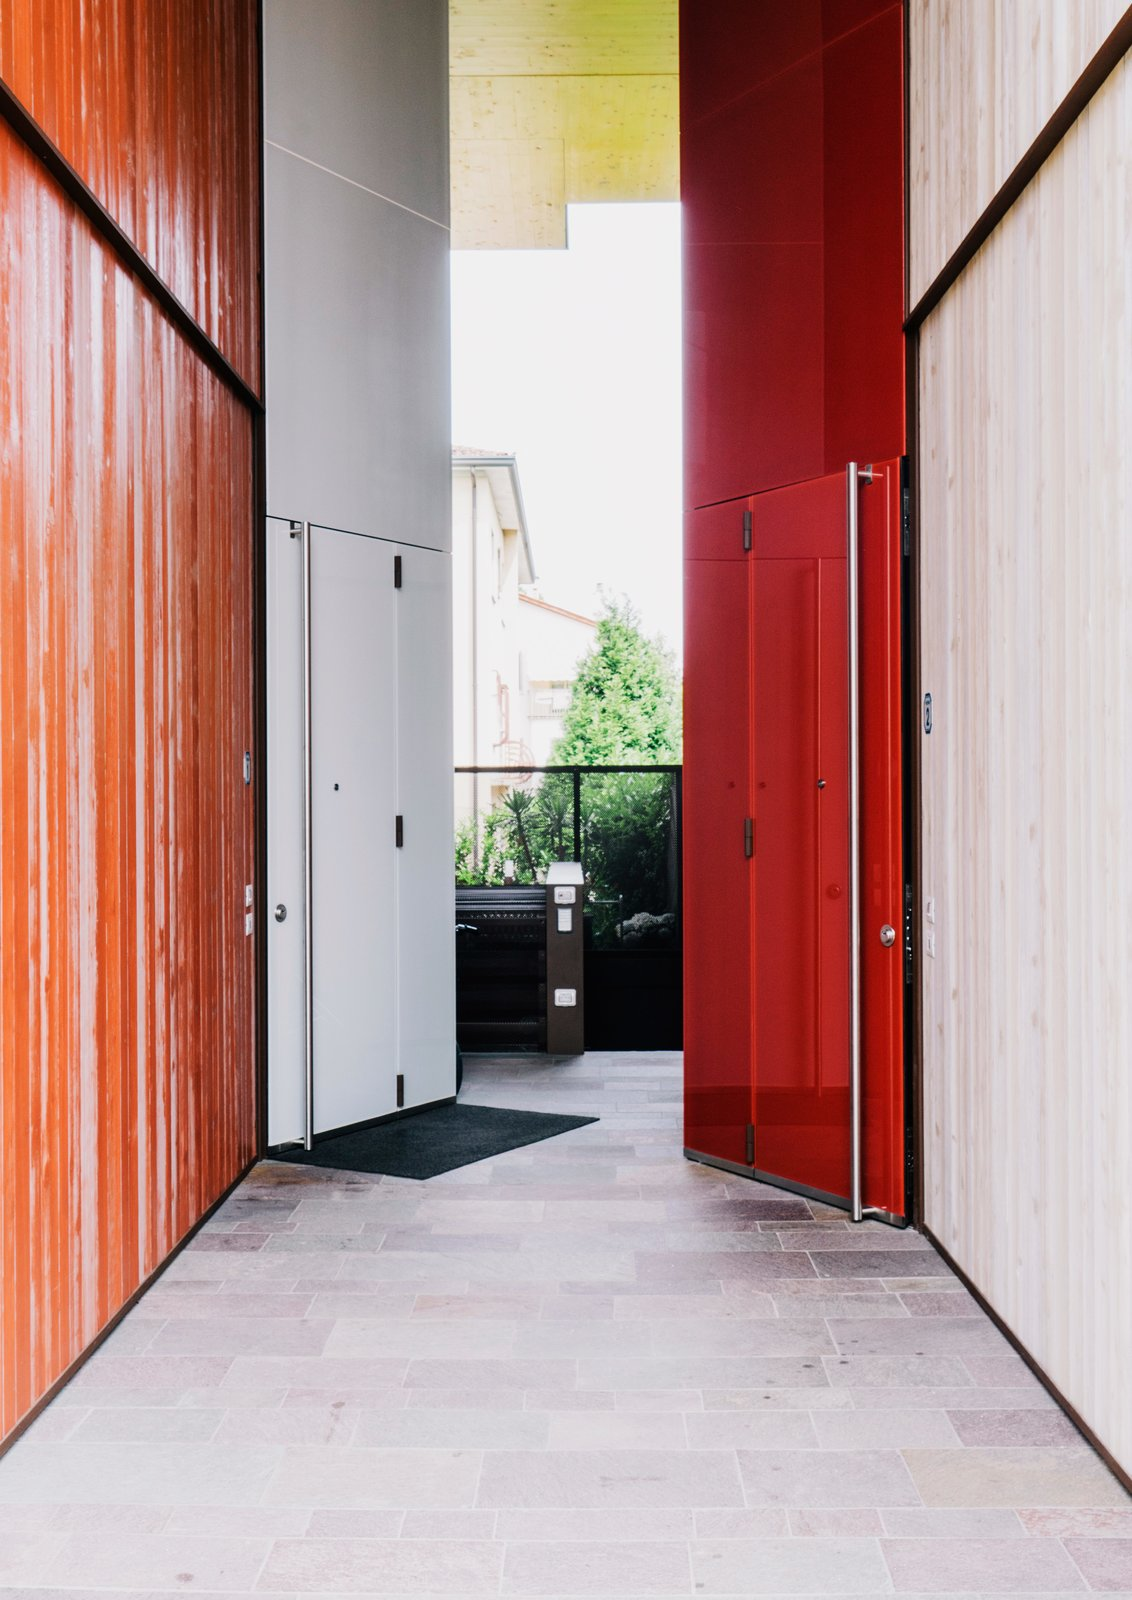 Hallway and Slate Floor Color is one way the architects differentiated the structures, as in the custom doors they designed for the entrances in contrasting light and dark light finishes.  Photo 2 of 8 in Could You Share Your Dream Home?